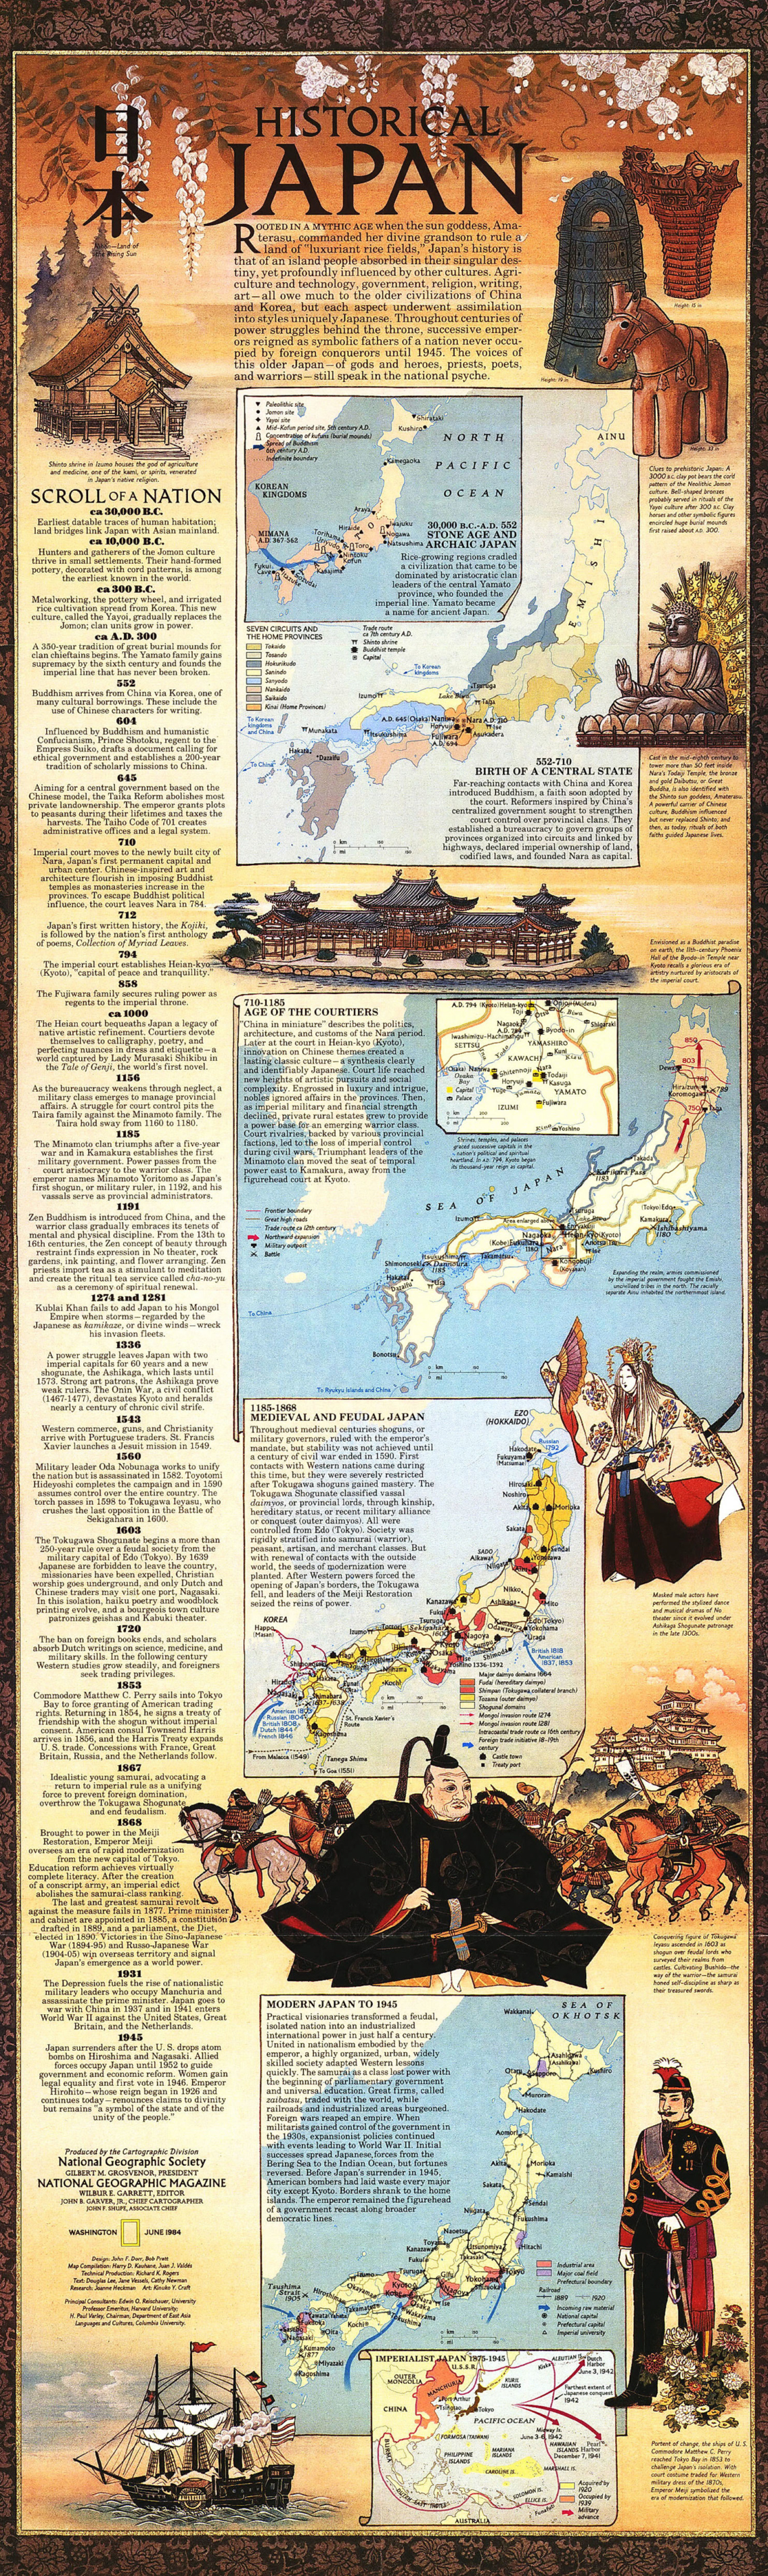 Historical Timeline of Japan 1984 Infographic